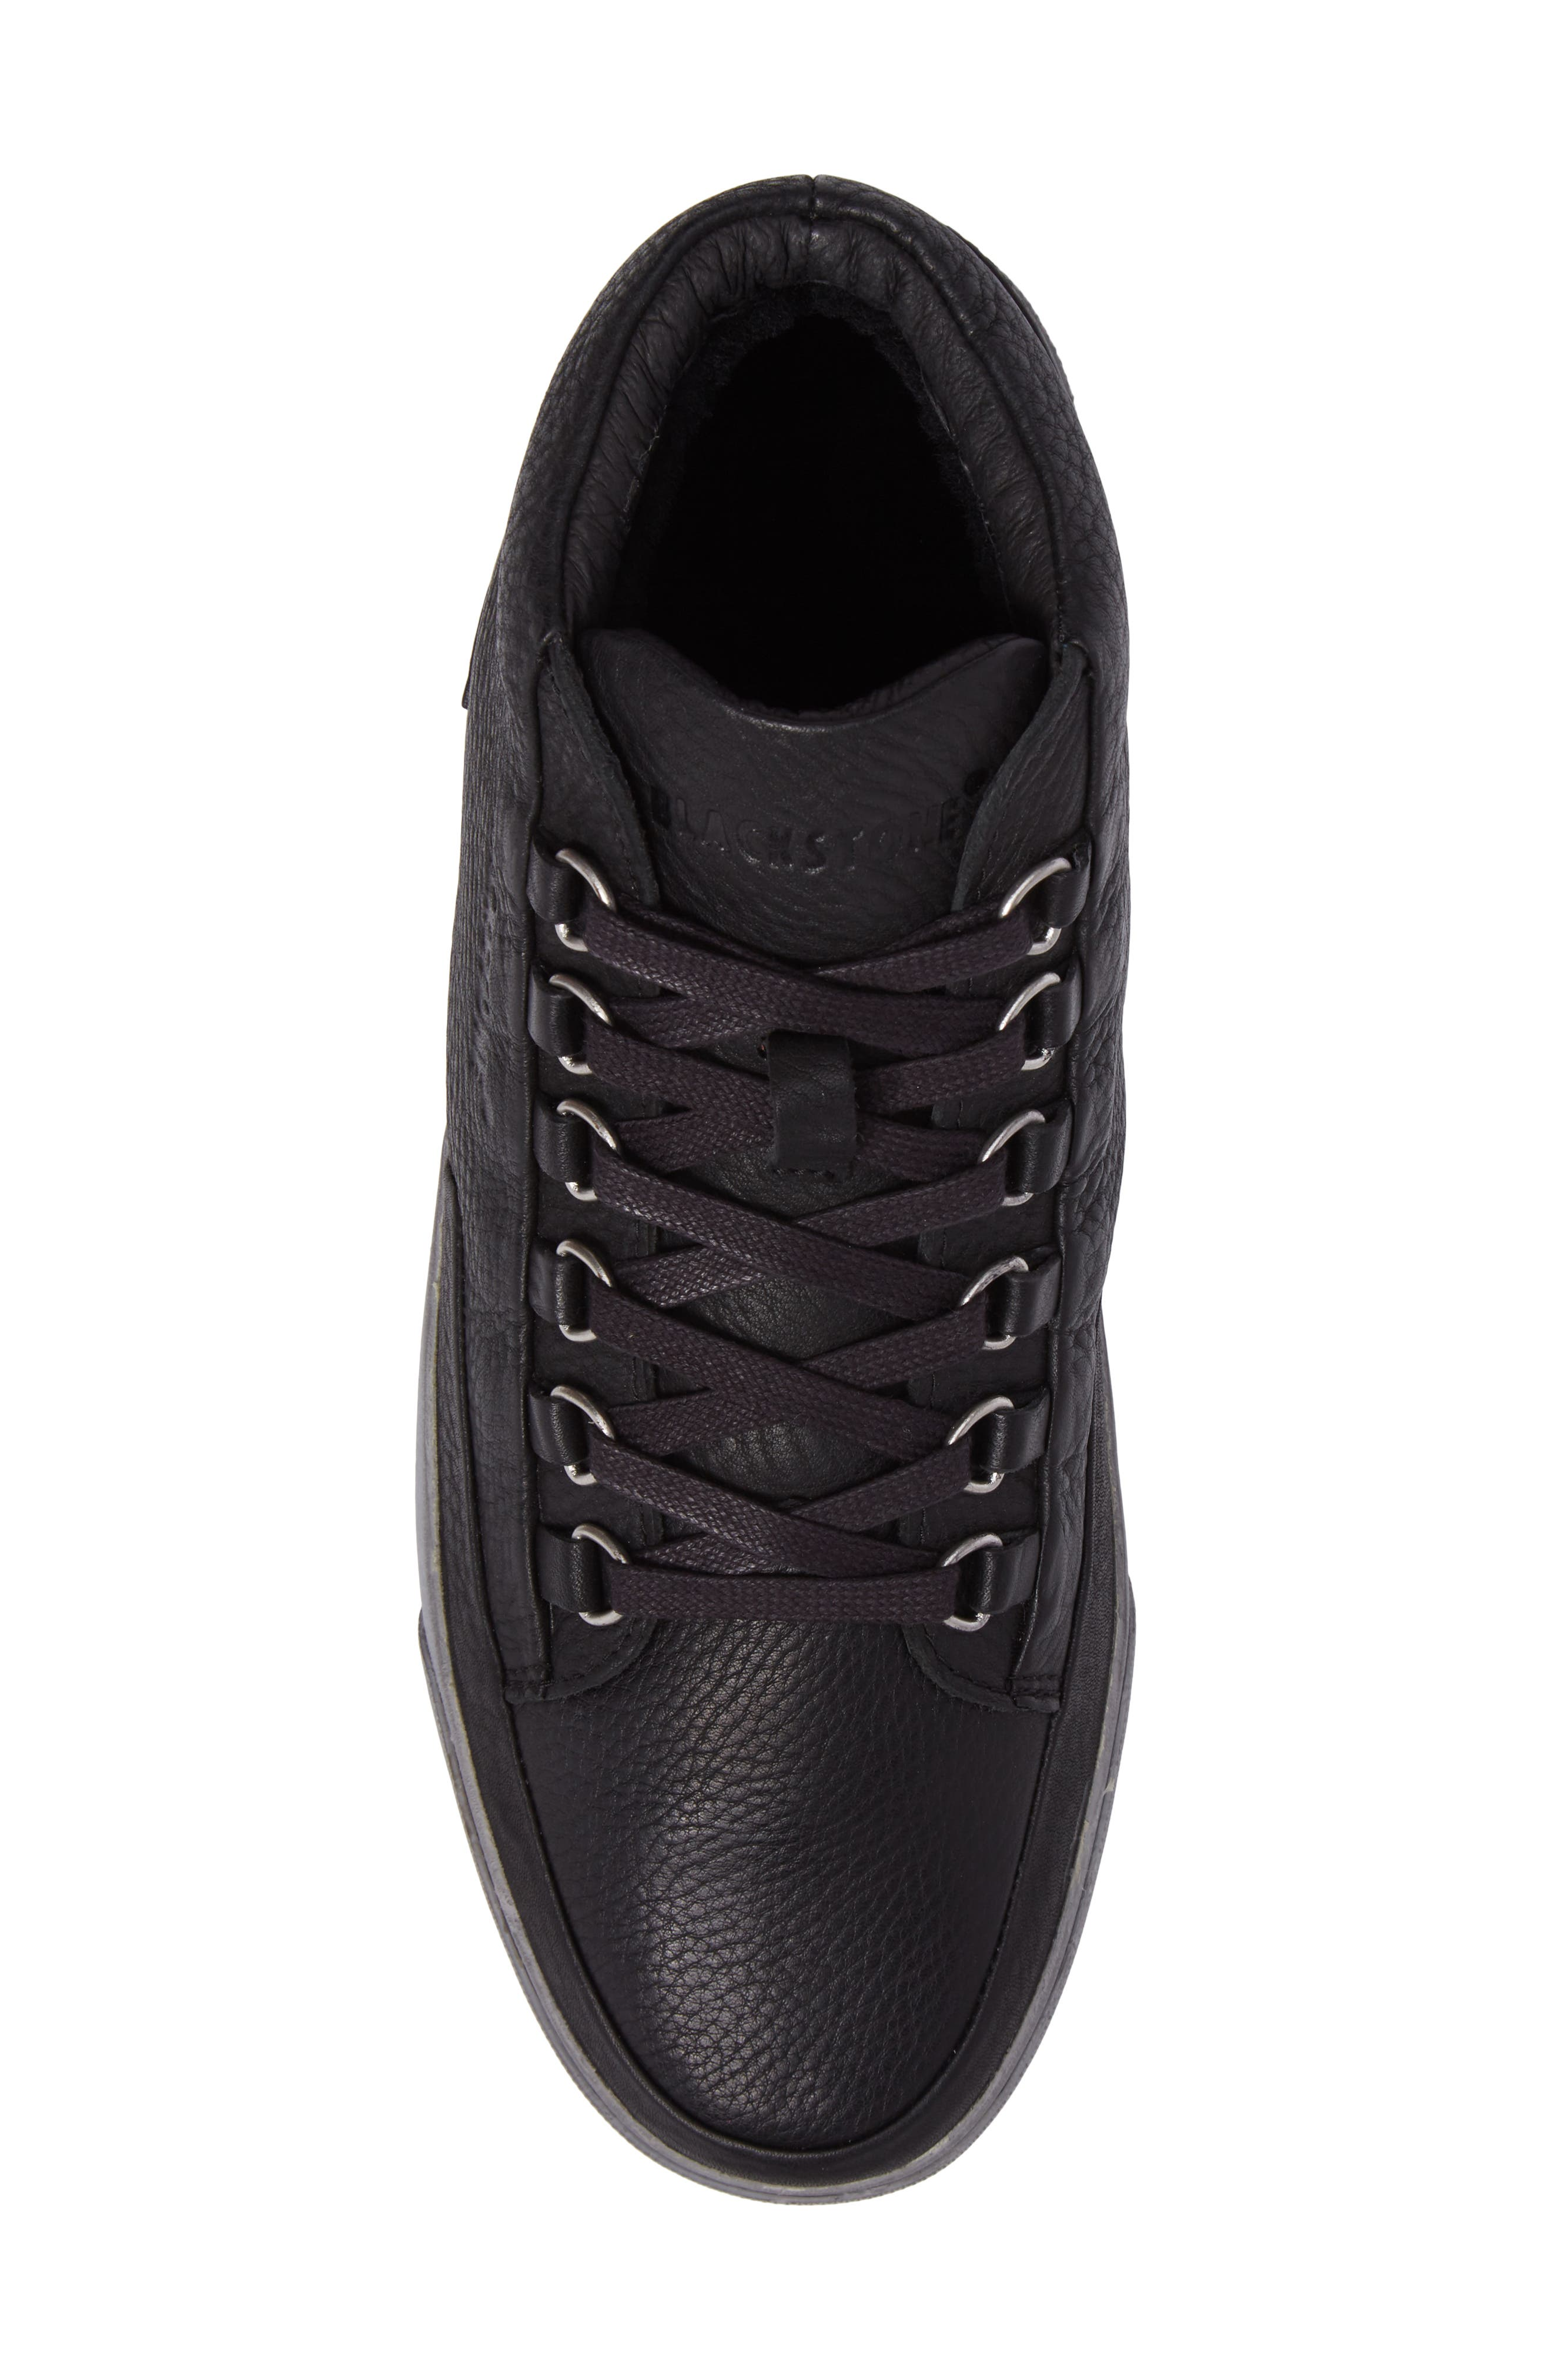 KM 02 Sneaker with Genuine Shearling Lining,                             Alternate thumbnail 5, color,                             001